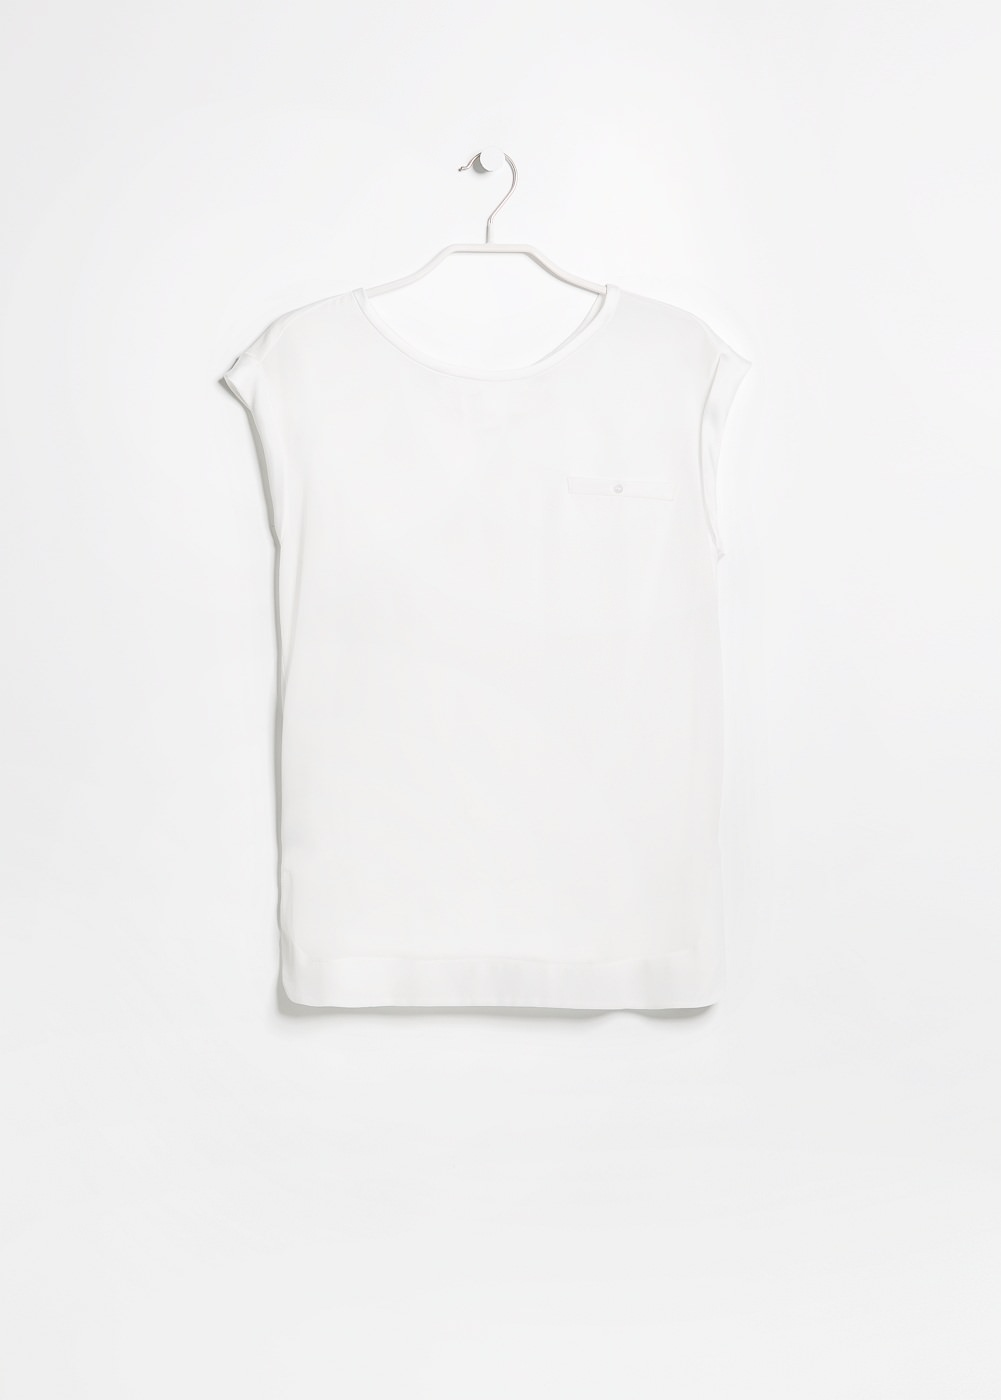 Satin appliqué t-shirt -  							T-shirts and tops - 							Women - 							MANGO